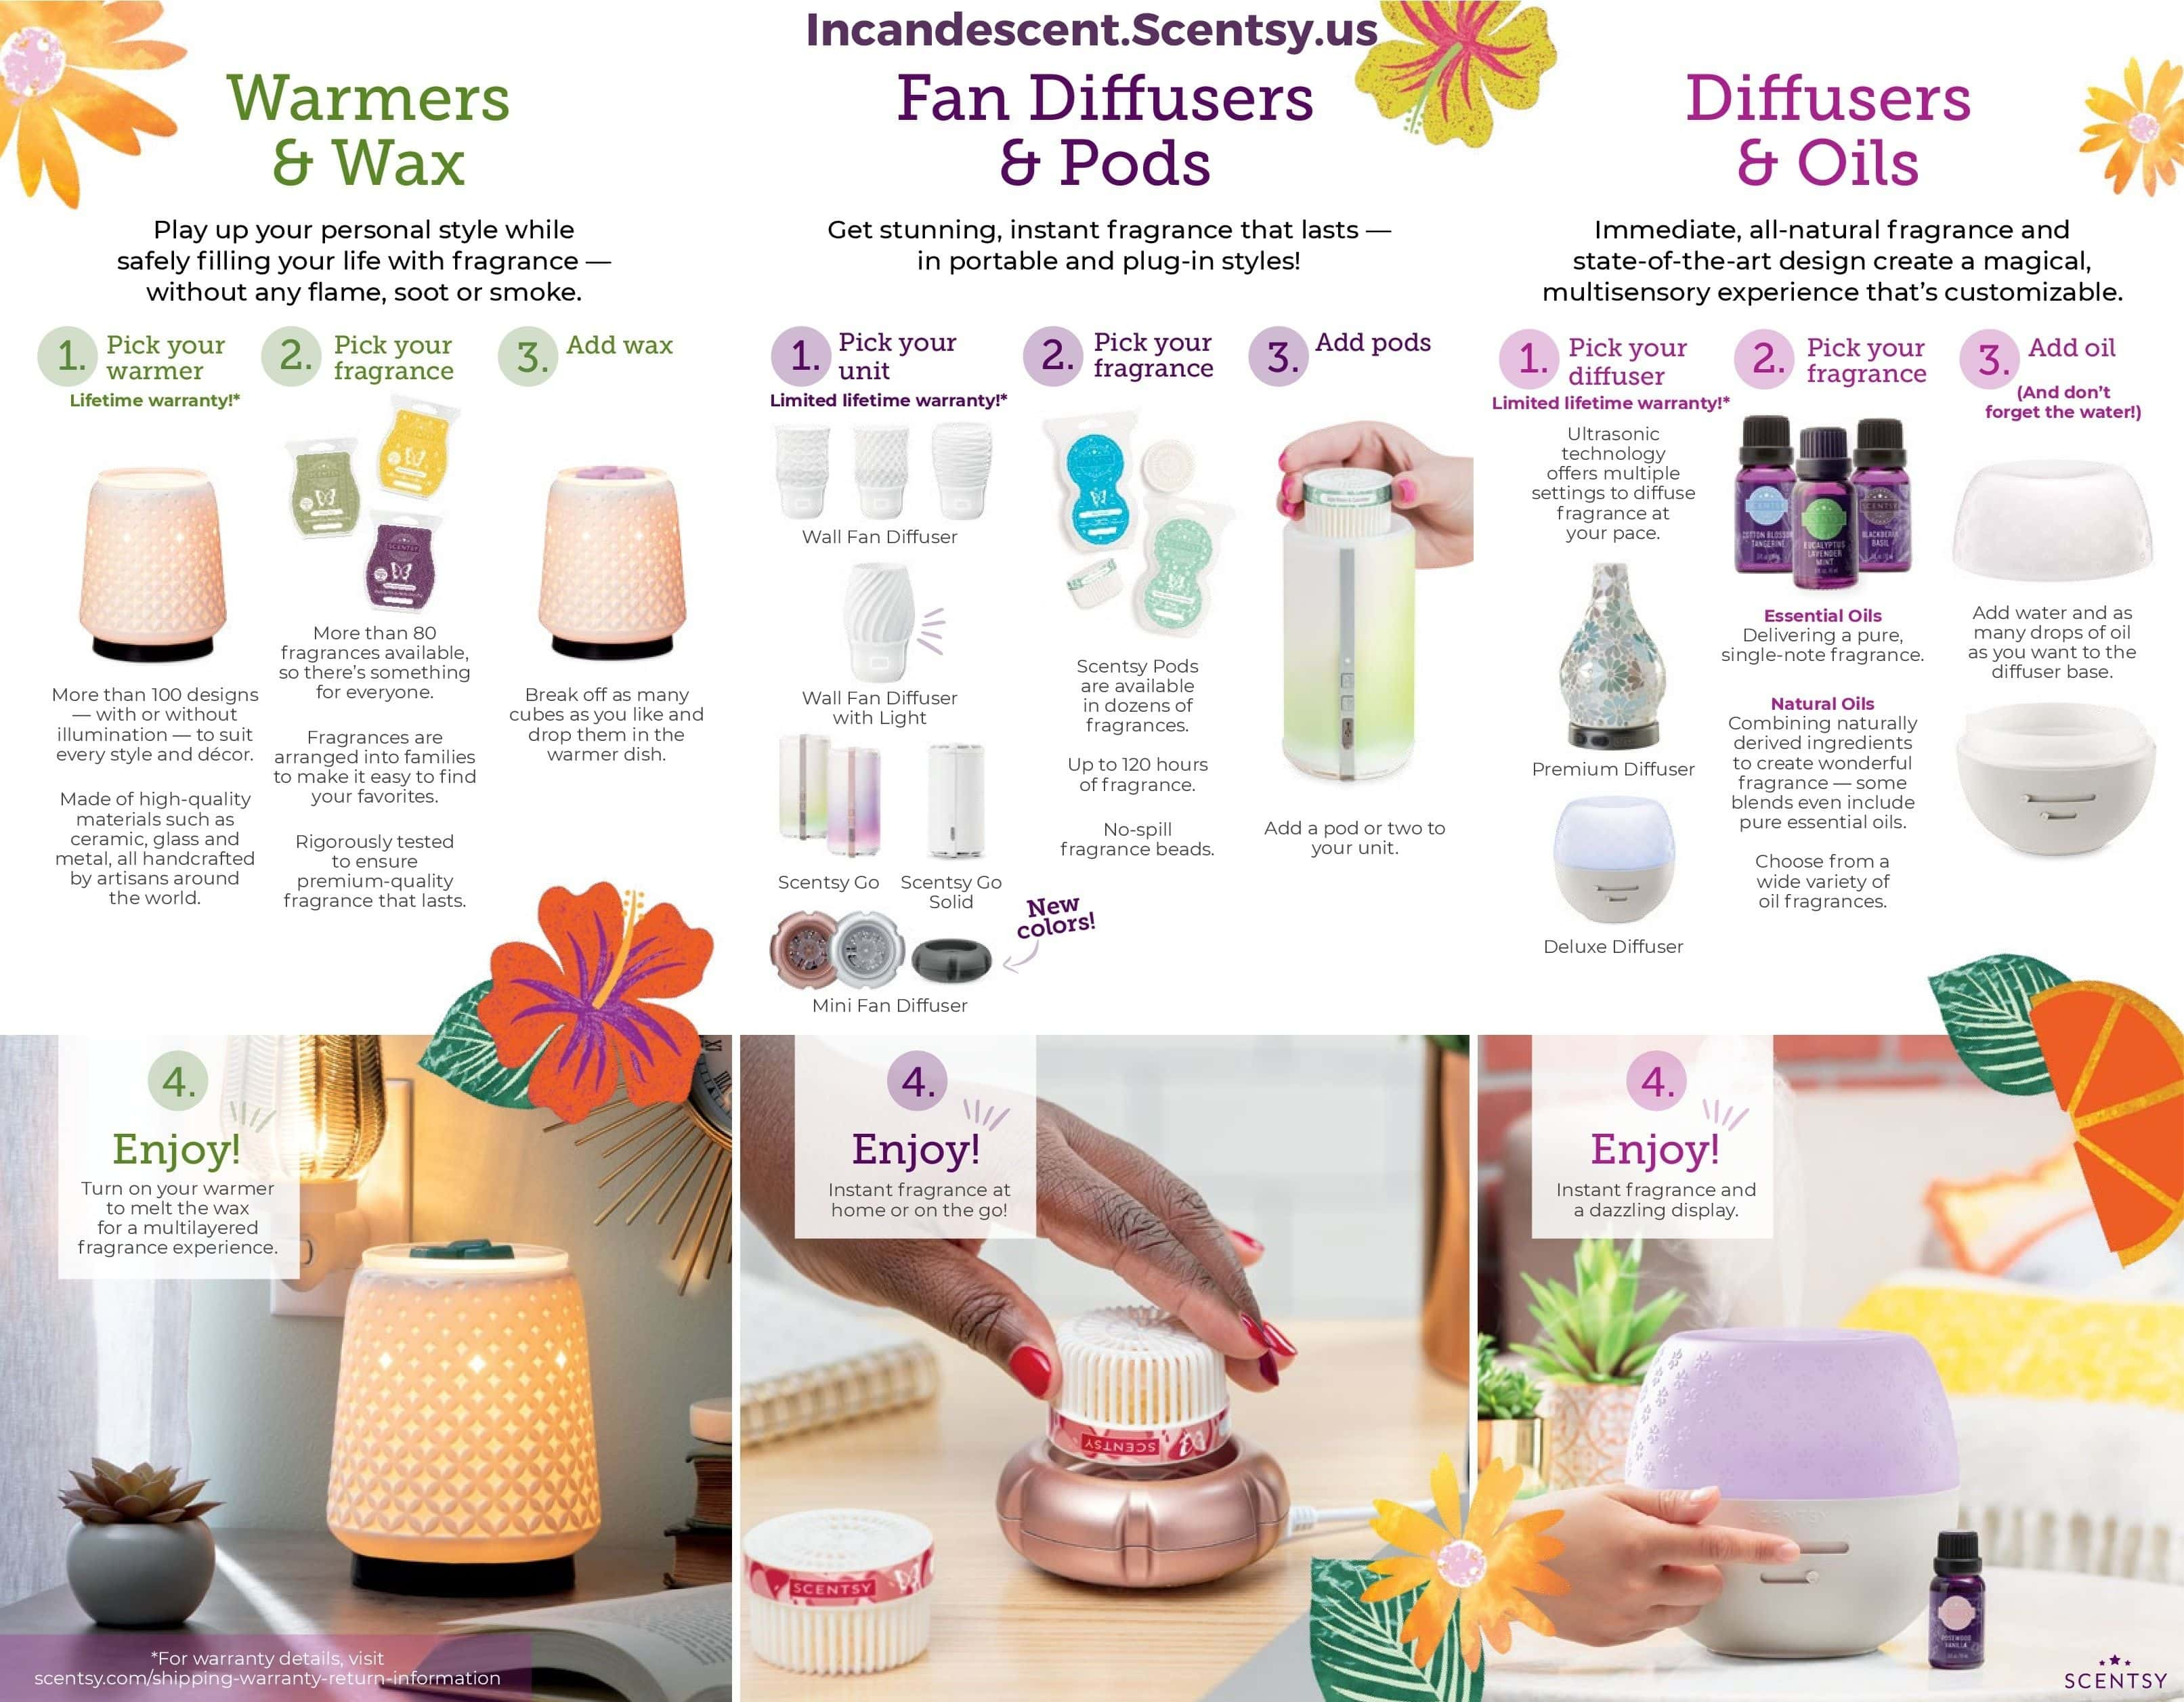 Incandescent.Scentsy.us Fragrance Systems   Scentsy Candles, Warmers, Scentsy Fragrances & All Scentsy Products   Scentsy® Online Store   Scentsy Warmers & Scents   Incandescent.Scentsy.us